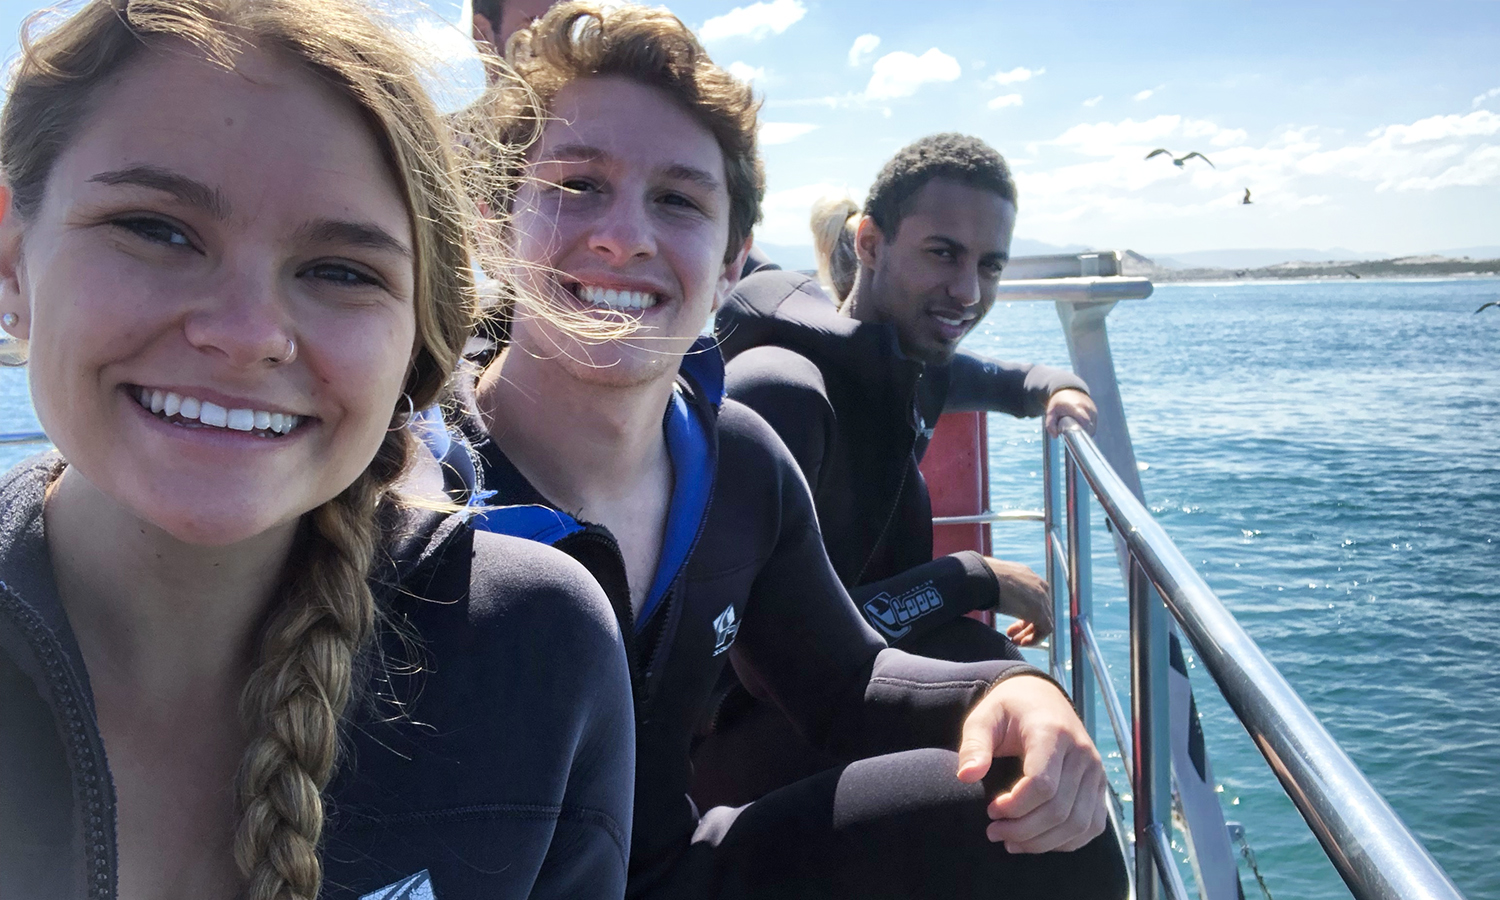 Dani Gosselin ('19), Dylan Morris ('19), and Donovan Hayden ('19) prepare to go shark cage diving while studying abroad in Gansbaii, South Africa